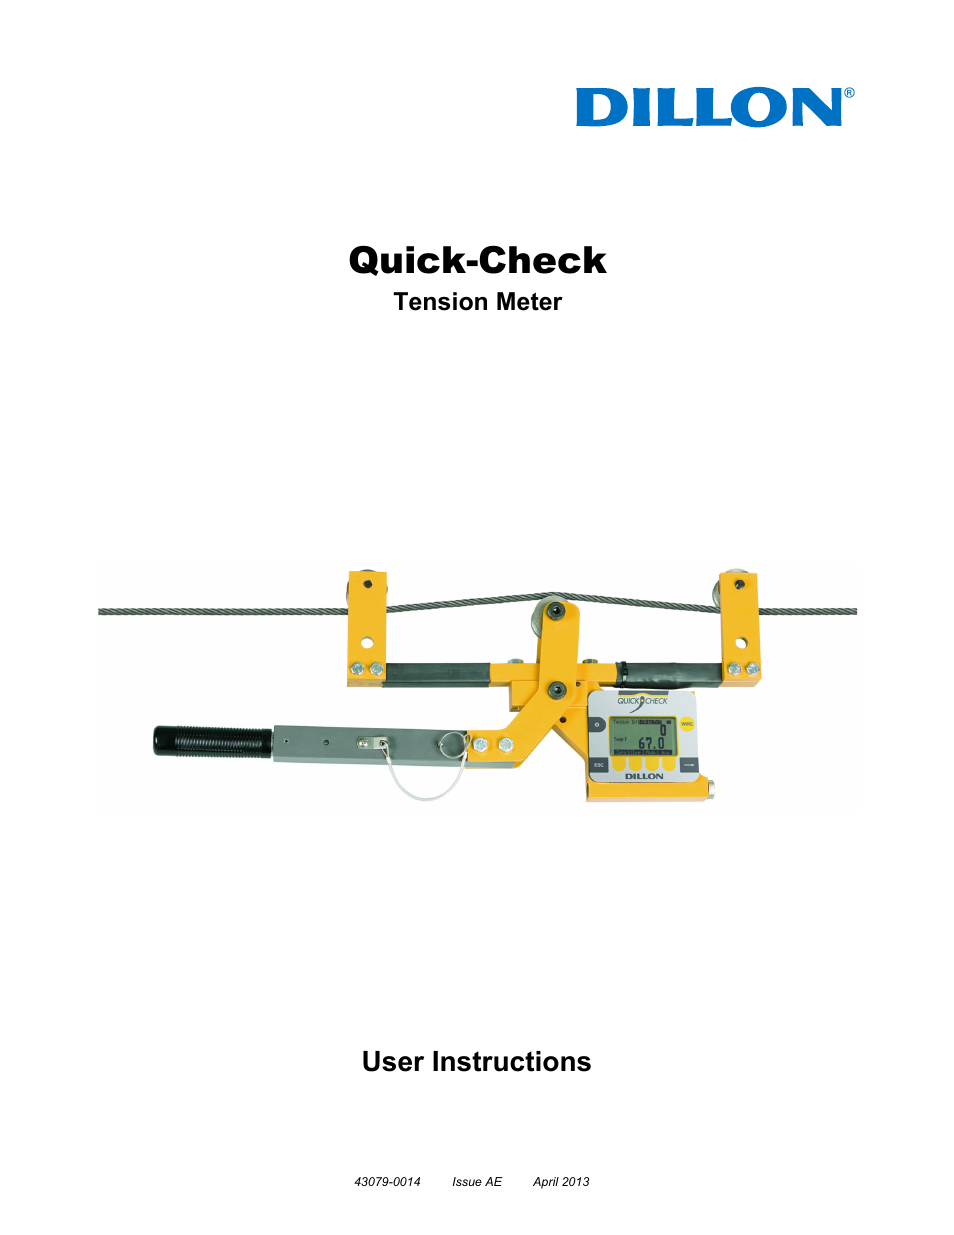 Dillon Quick-Check Wire Tension Meter (Old) User Manual | 28 pages